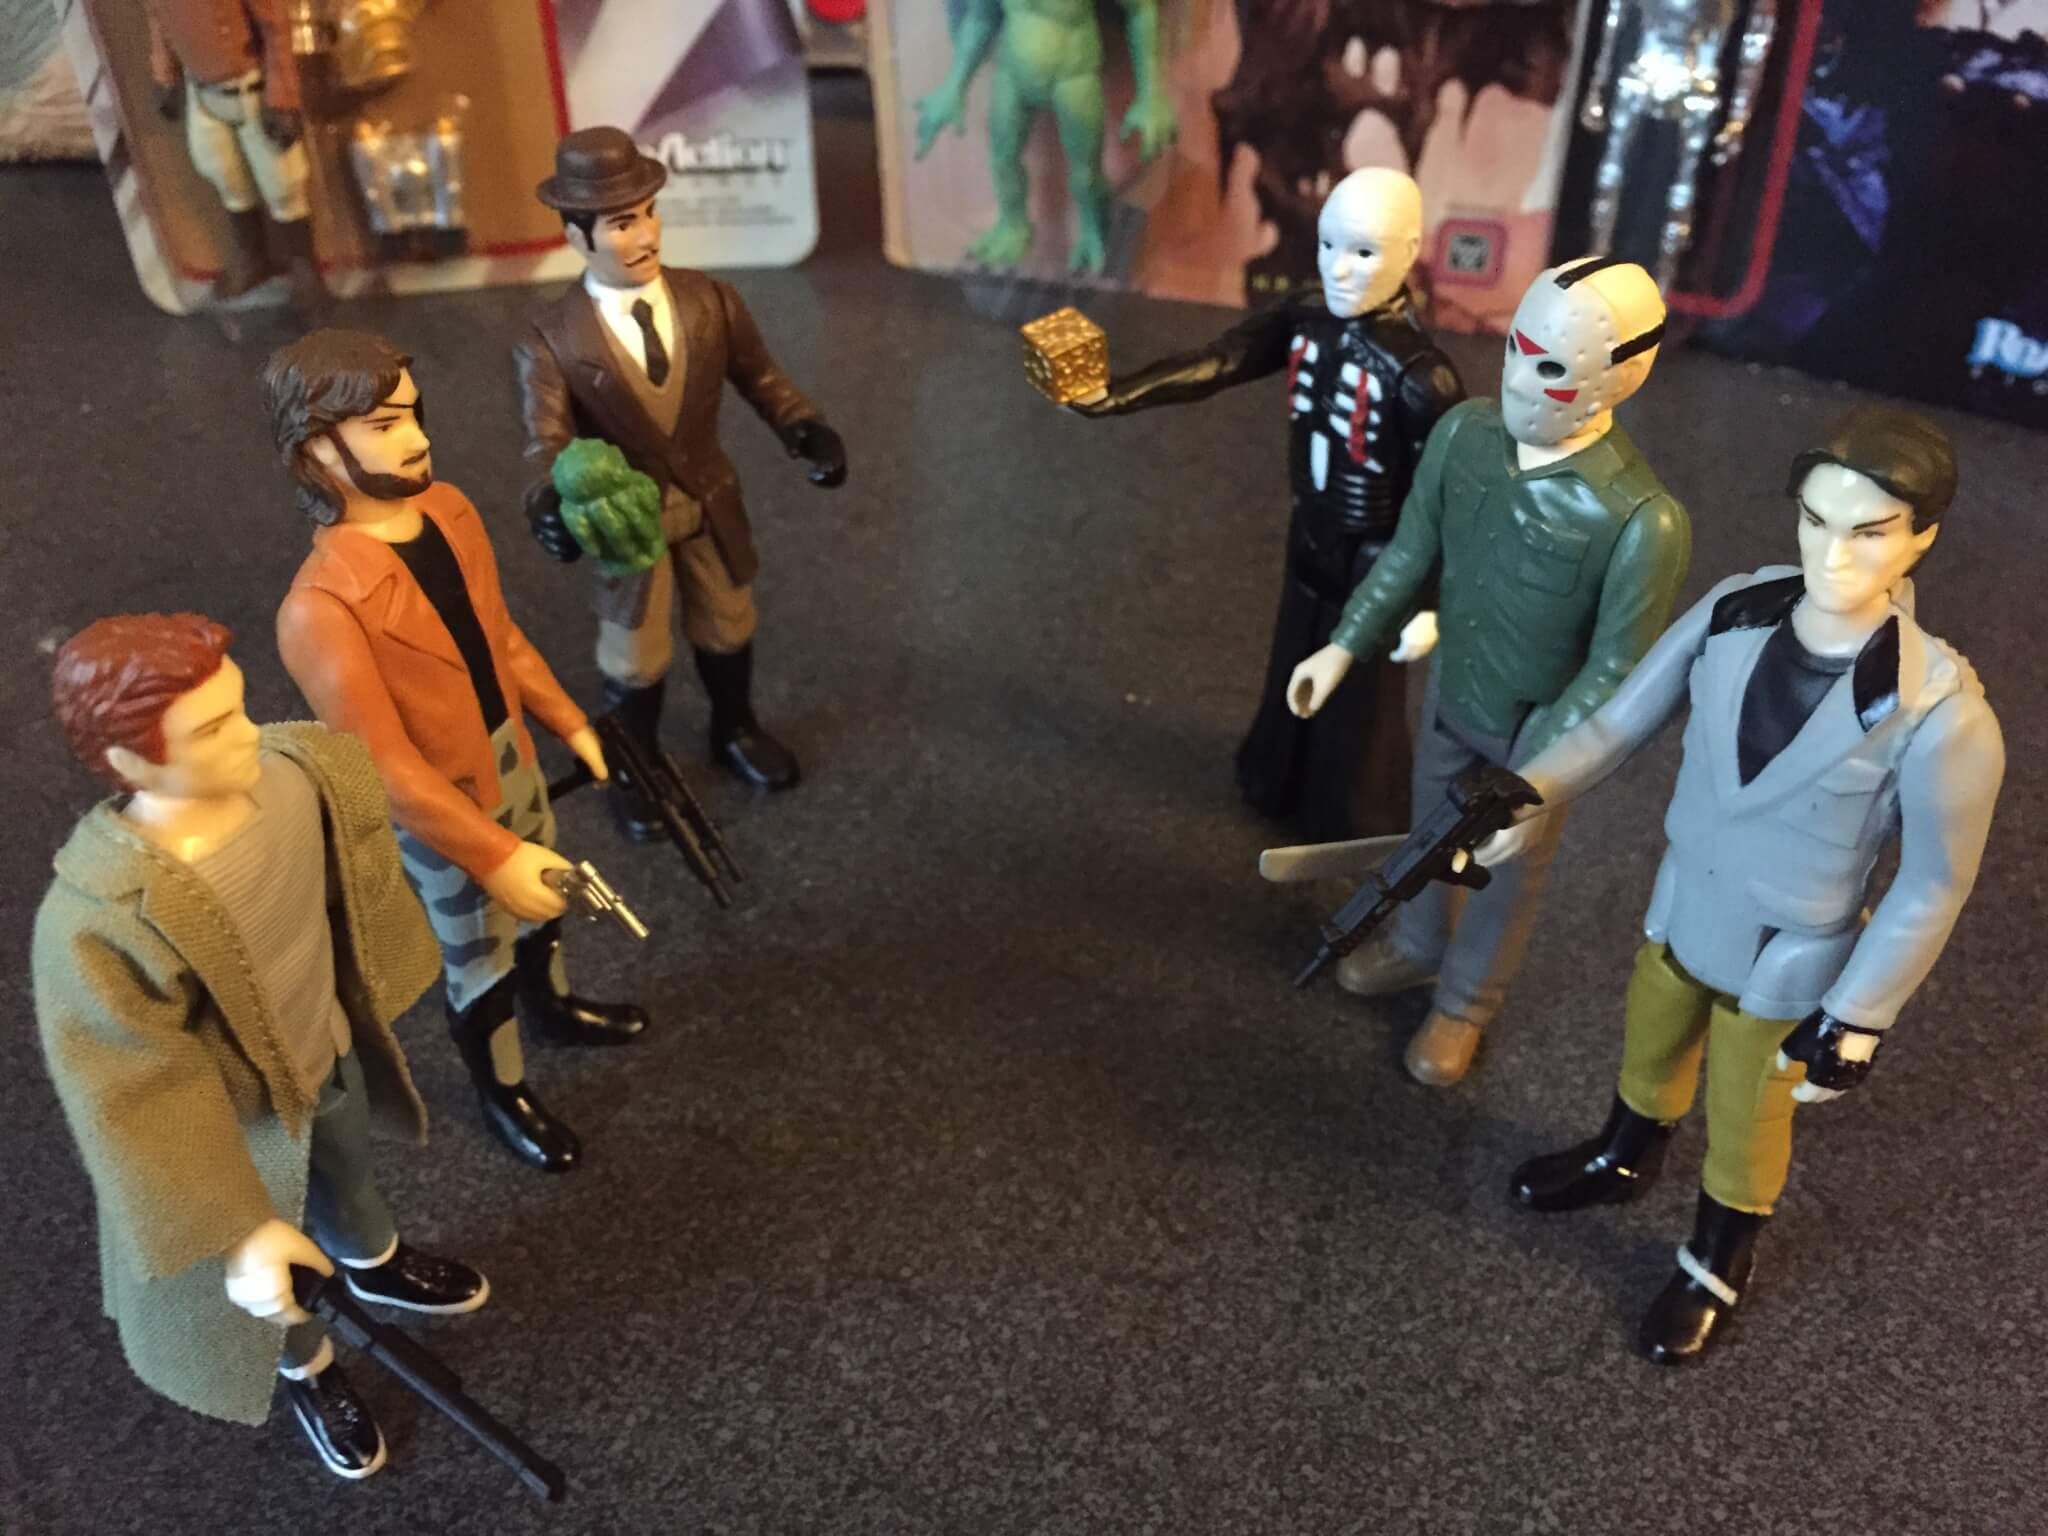 New Vintage Action Figures